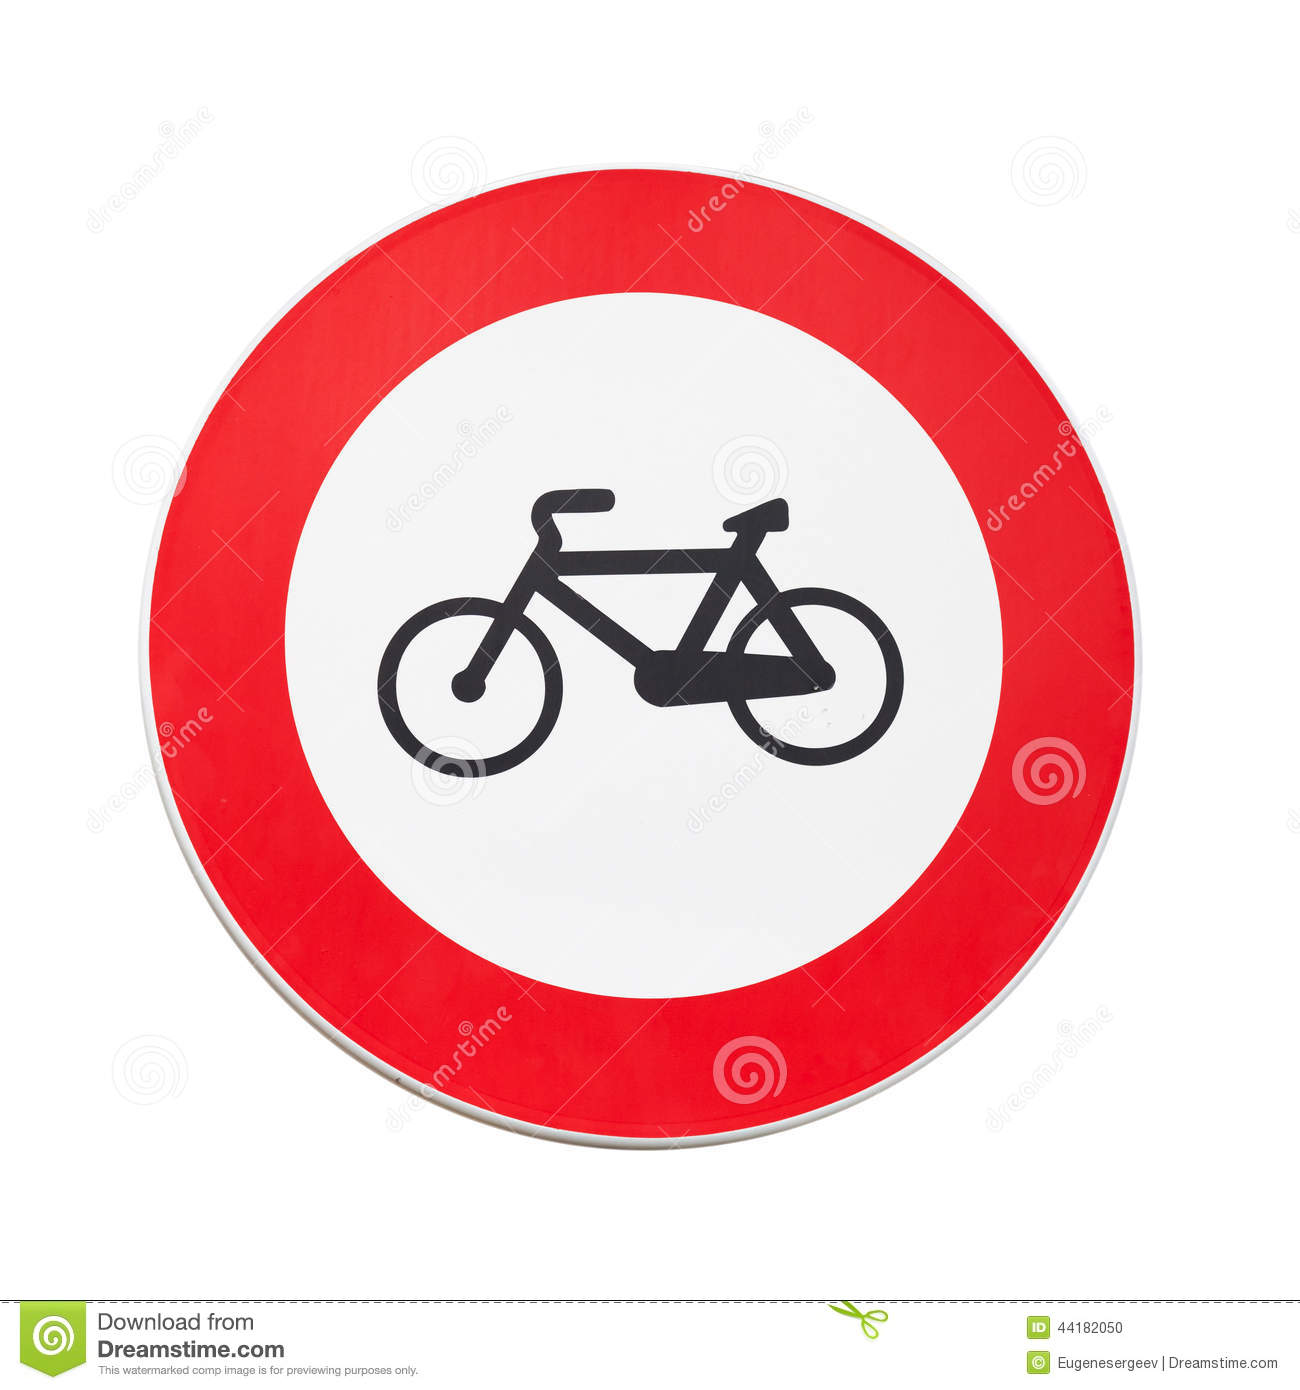 Bicycles Traffic Prohibited, Road Sign Isolated Stock Photo.